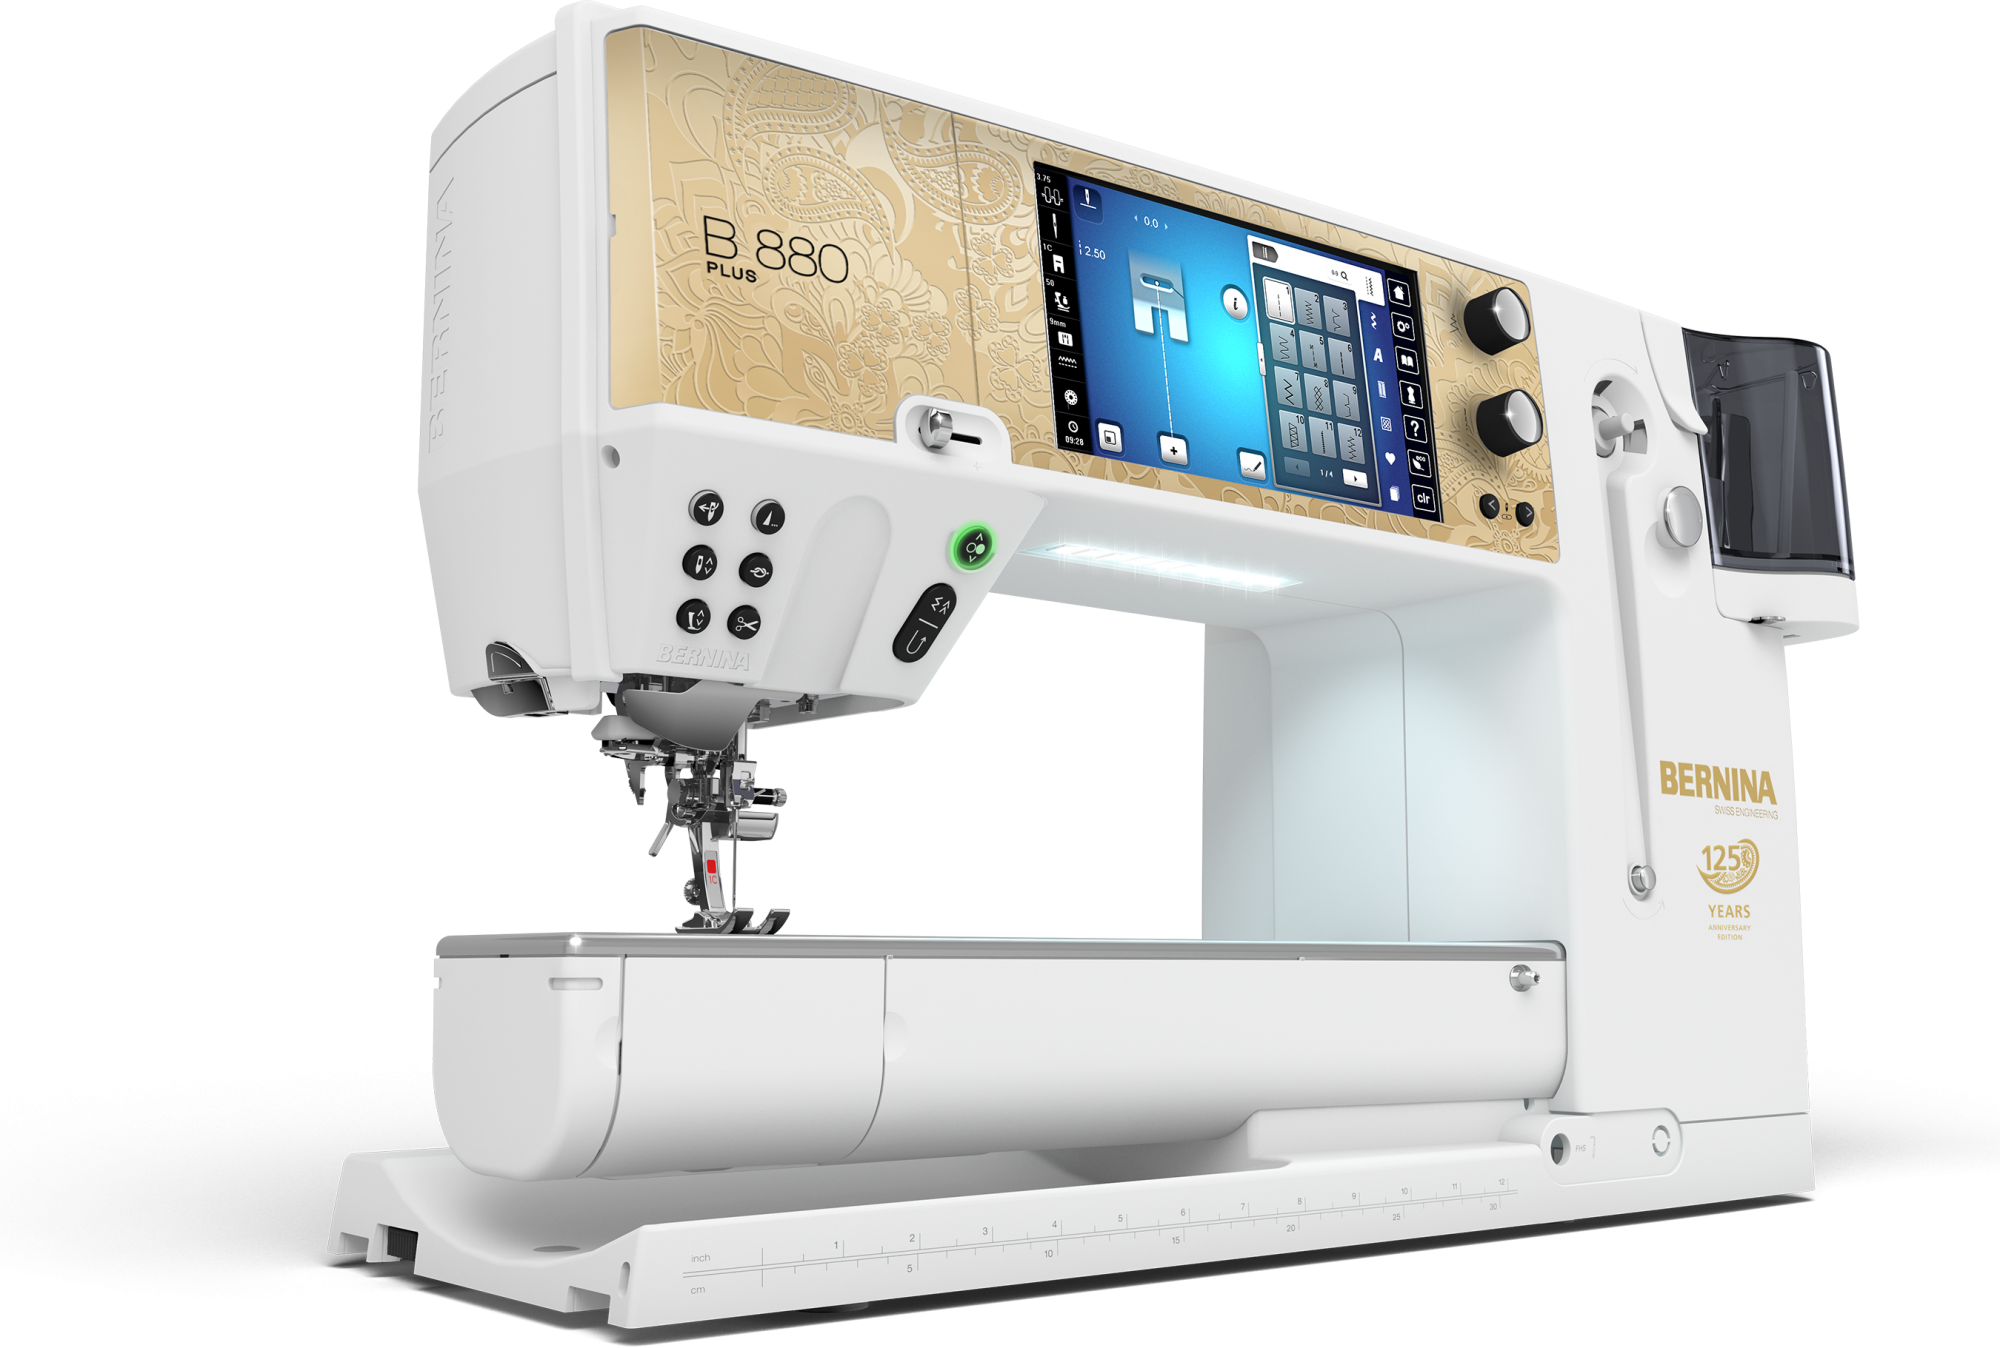 BERNINA 880 Plus Anniversary Edition